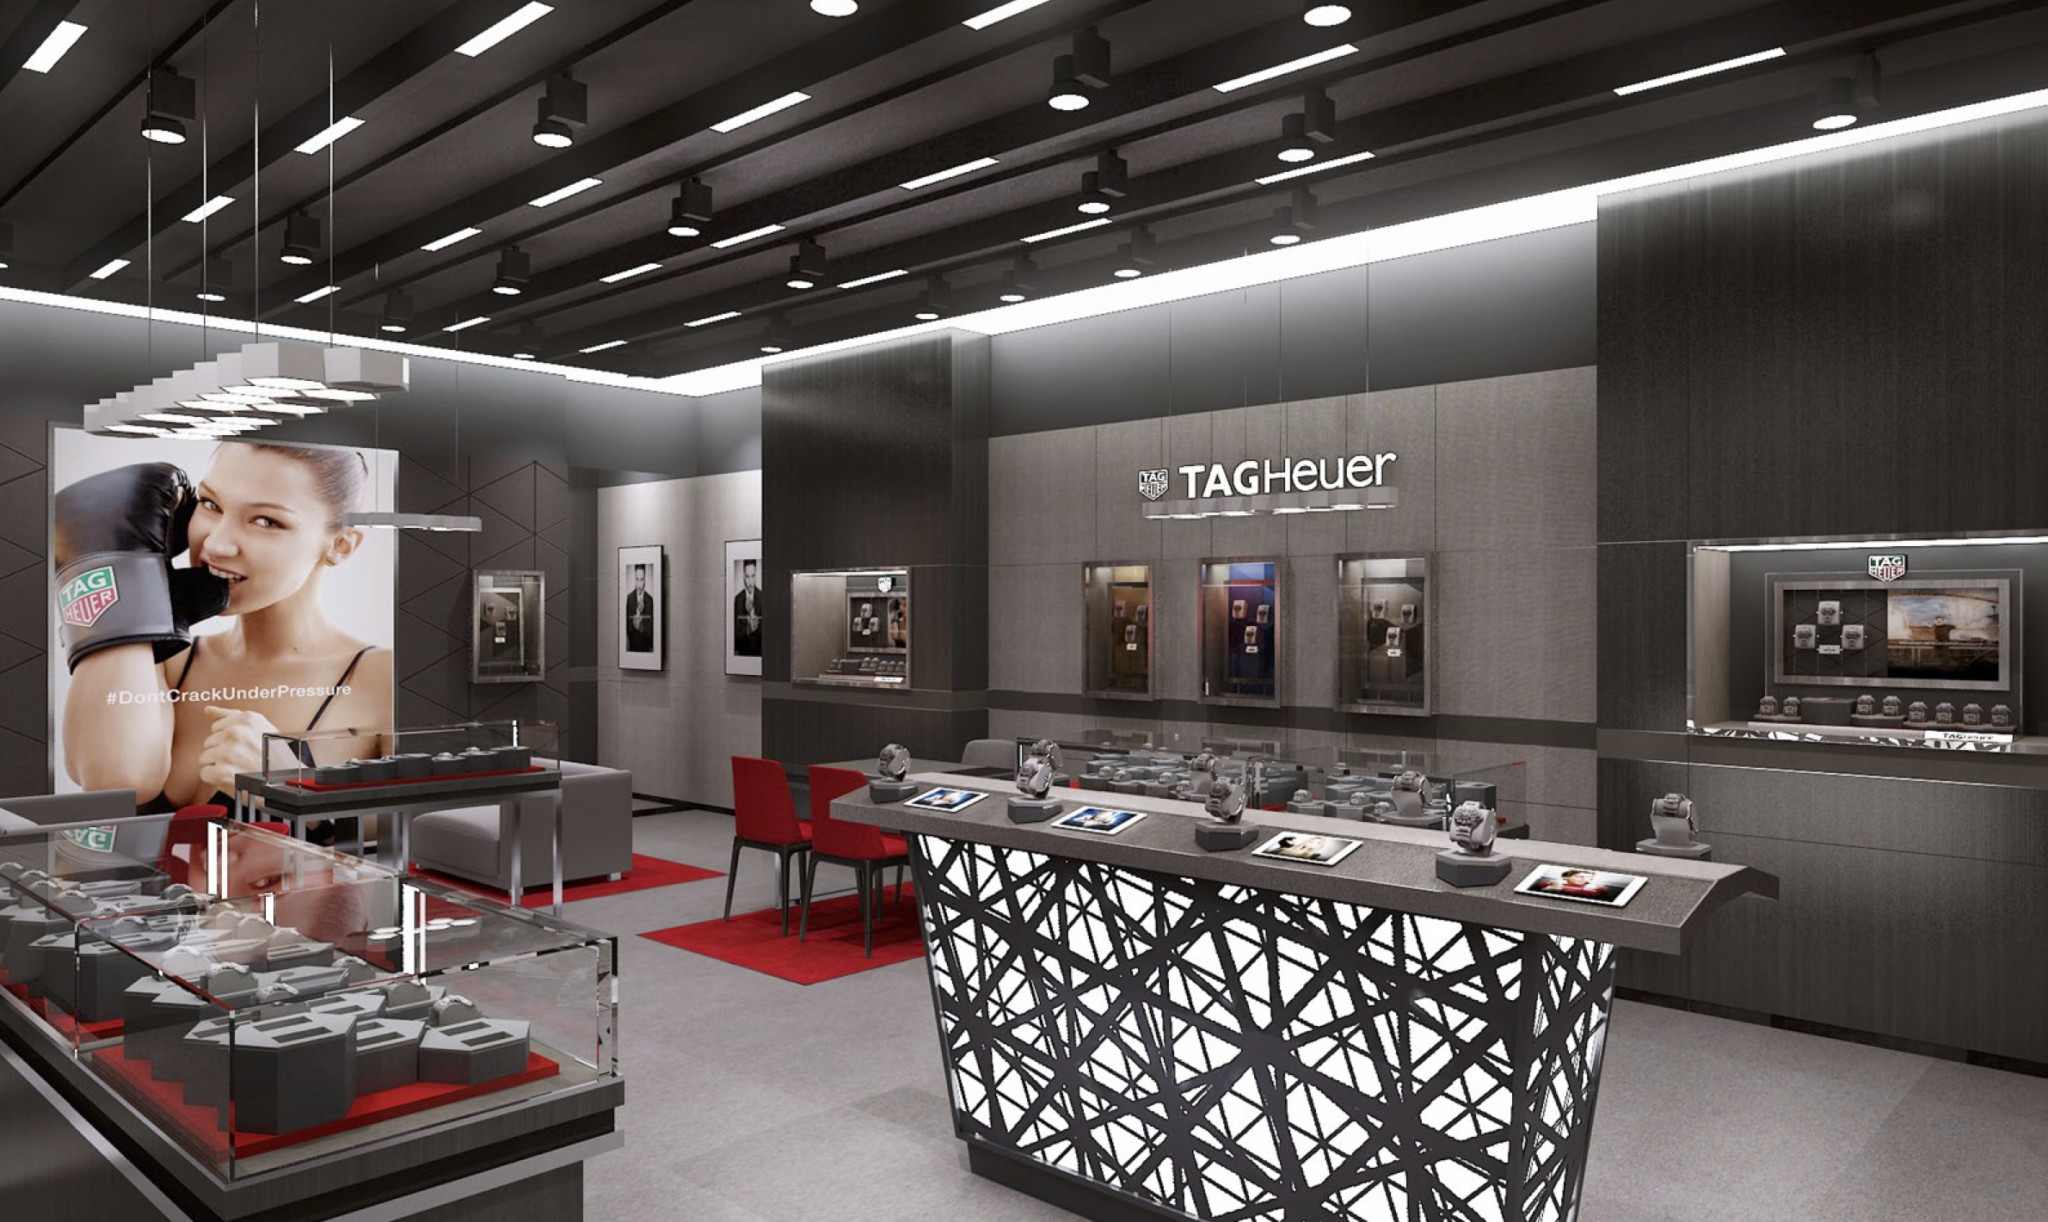 48ac0ae0b Aurum Holdings opened a monobrand TAG Heuer boutique in Sheffield's  Meadowhall shopping centre this year.